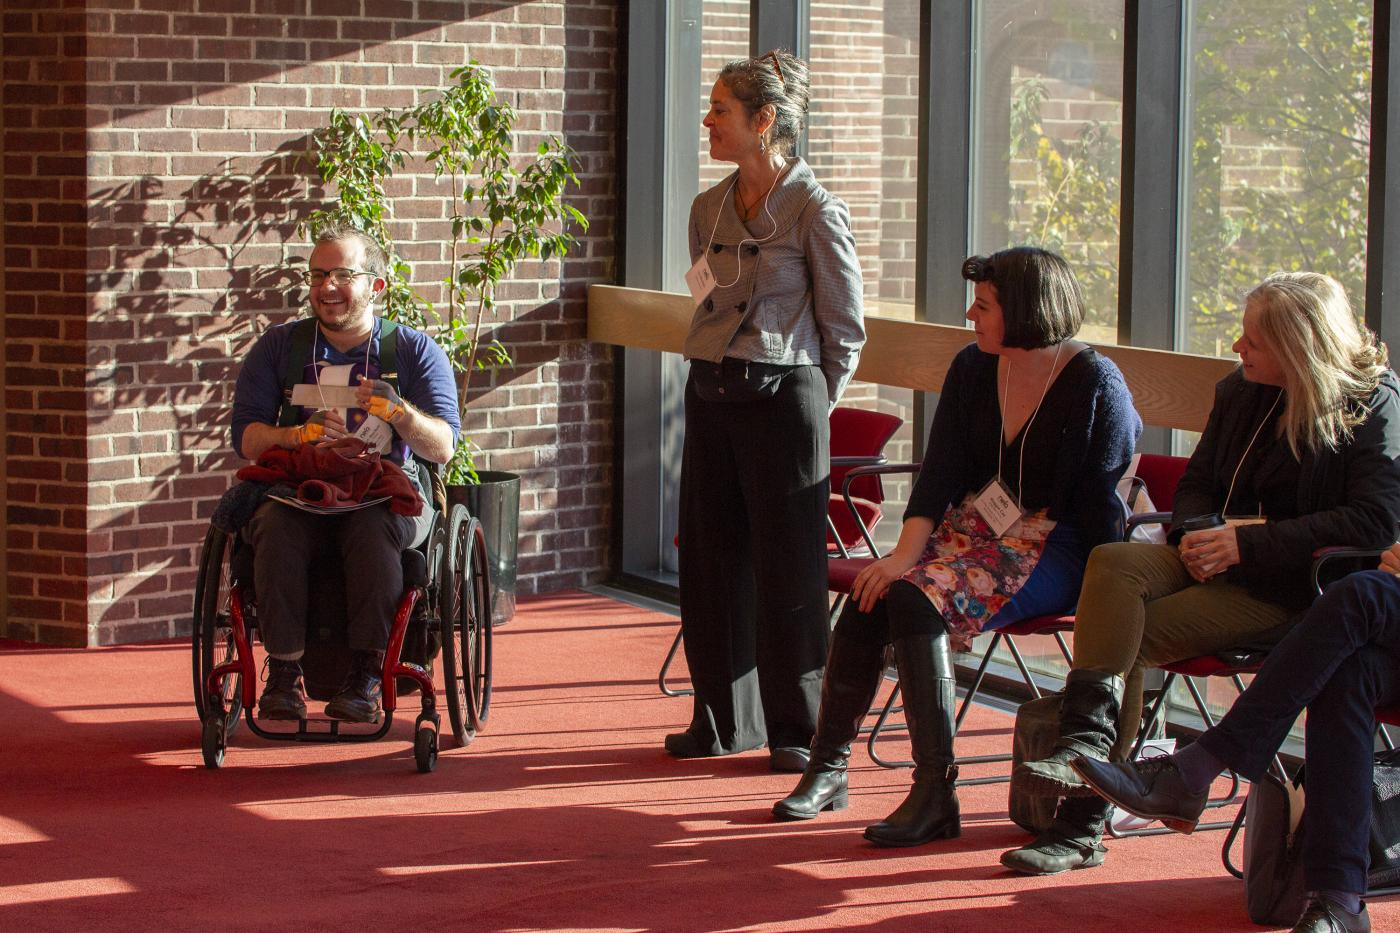 artist Toby MacNutt speaks to a group of people at the 2018 Idea Swap New to NEFA session. Toby is smiling and seated in their wheelchair next to other participants who watch them speak. Sunshine streams through tall glass windows behind the participants into the meeting room.